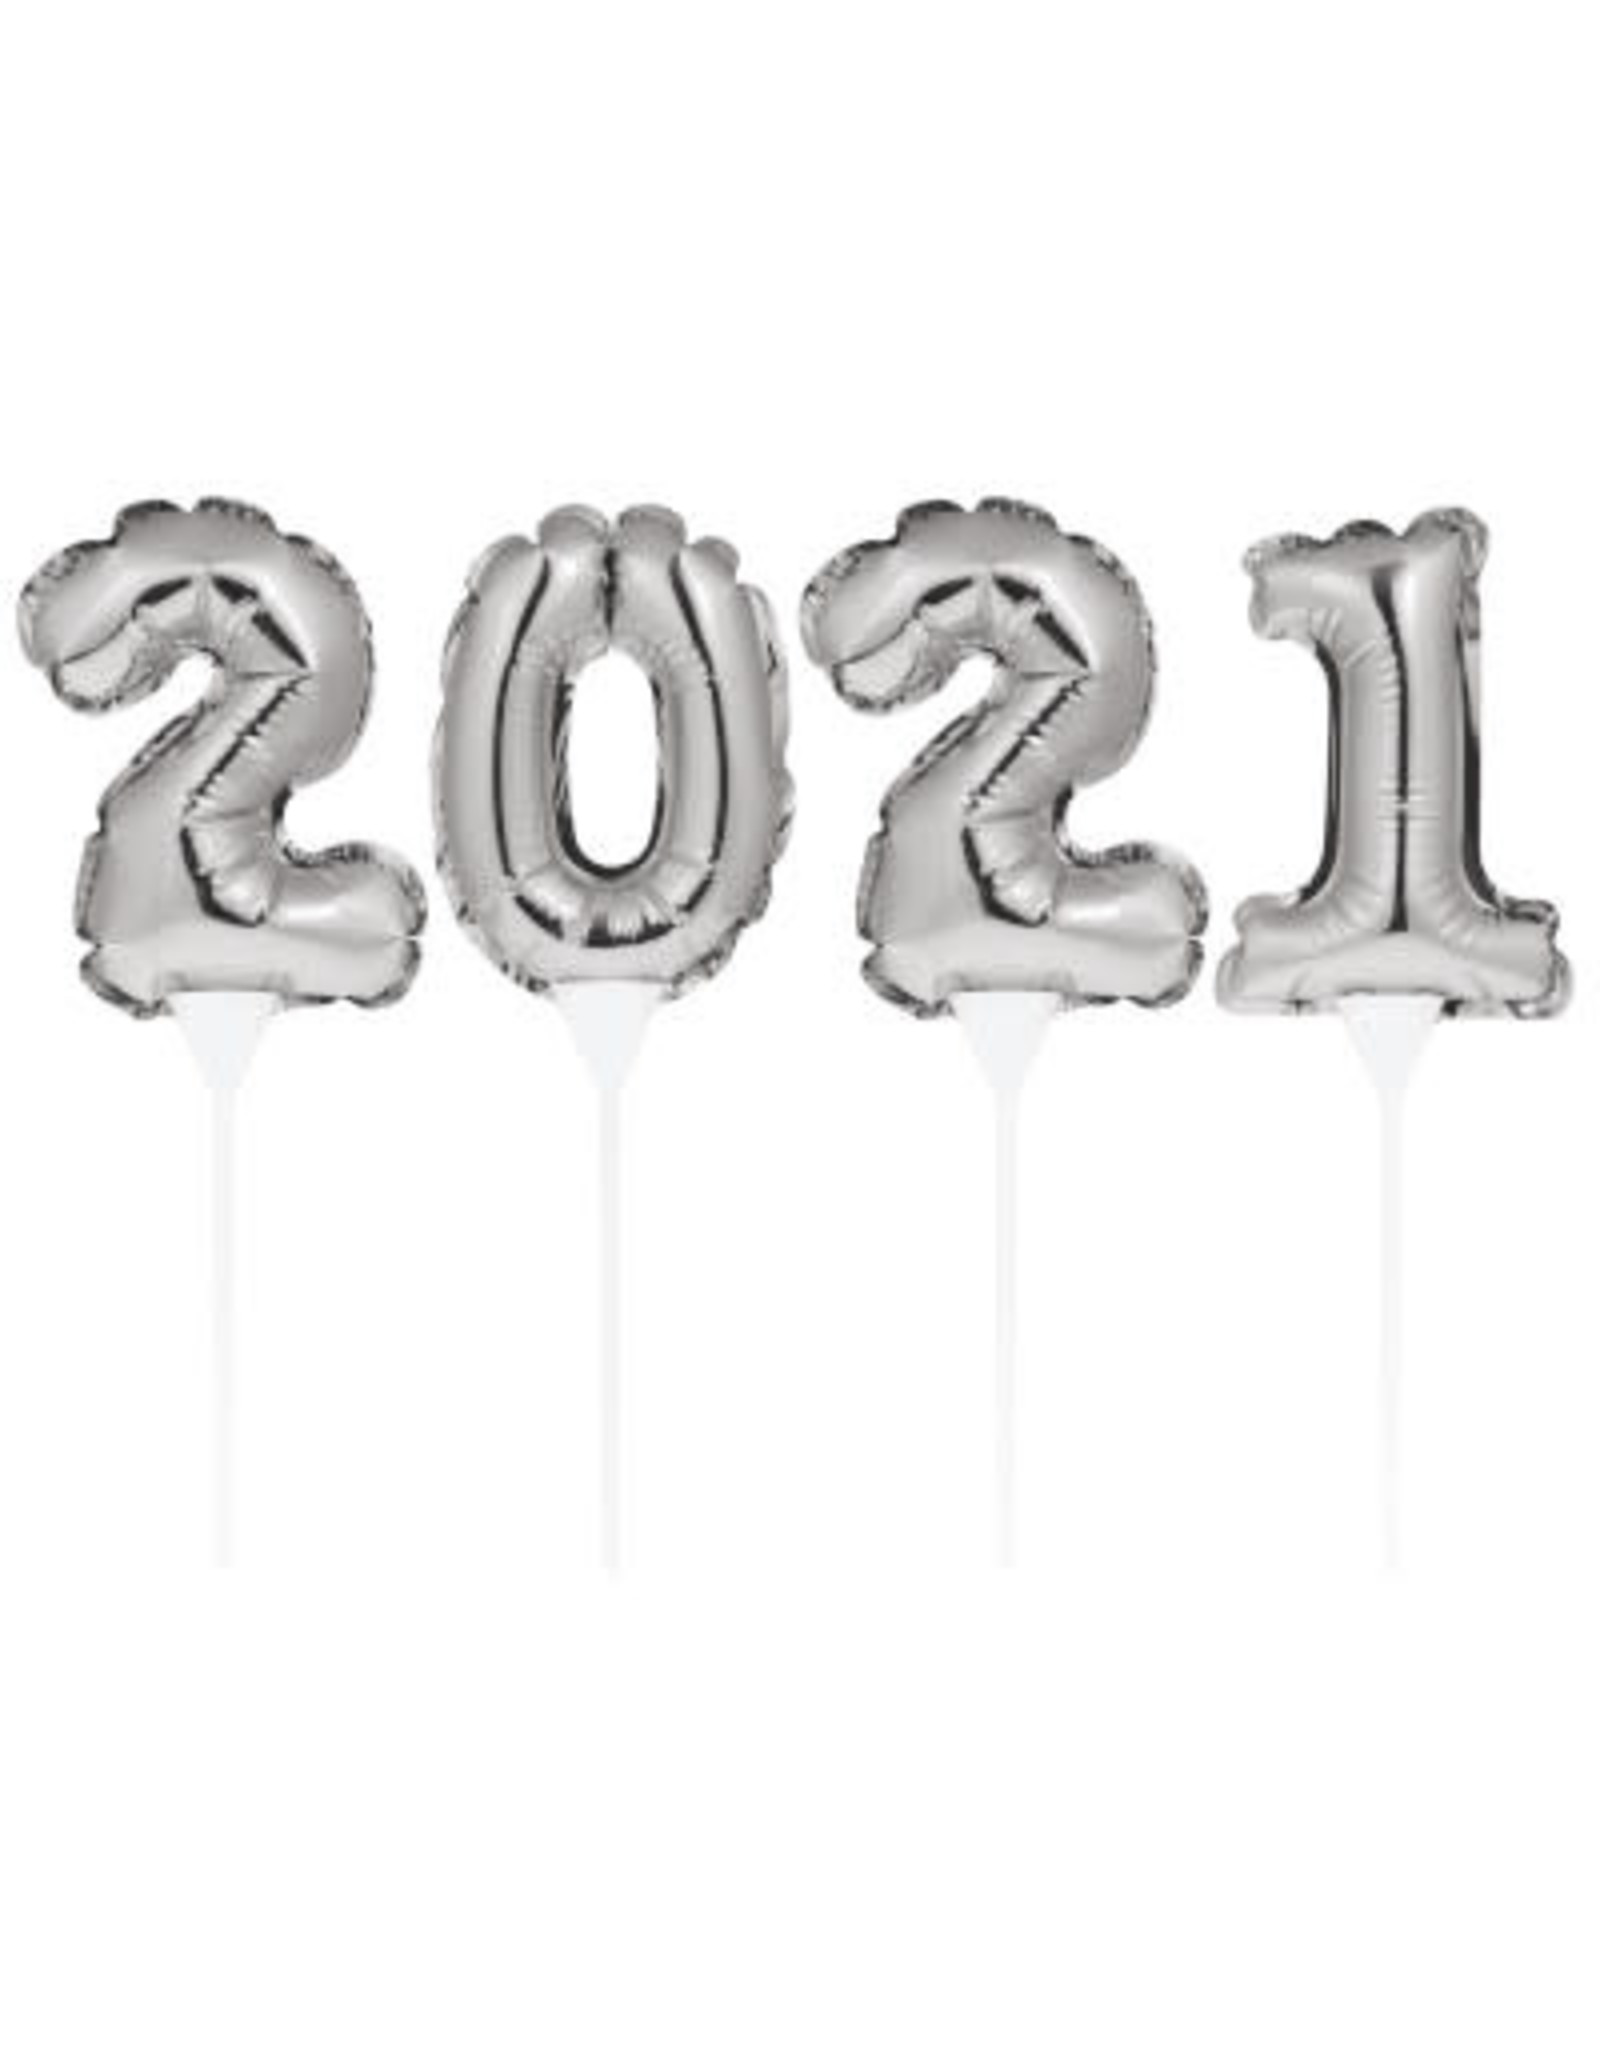 creative converting 2021 Silver Self-Inflating Cake Topper